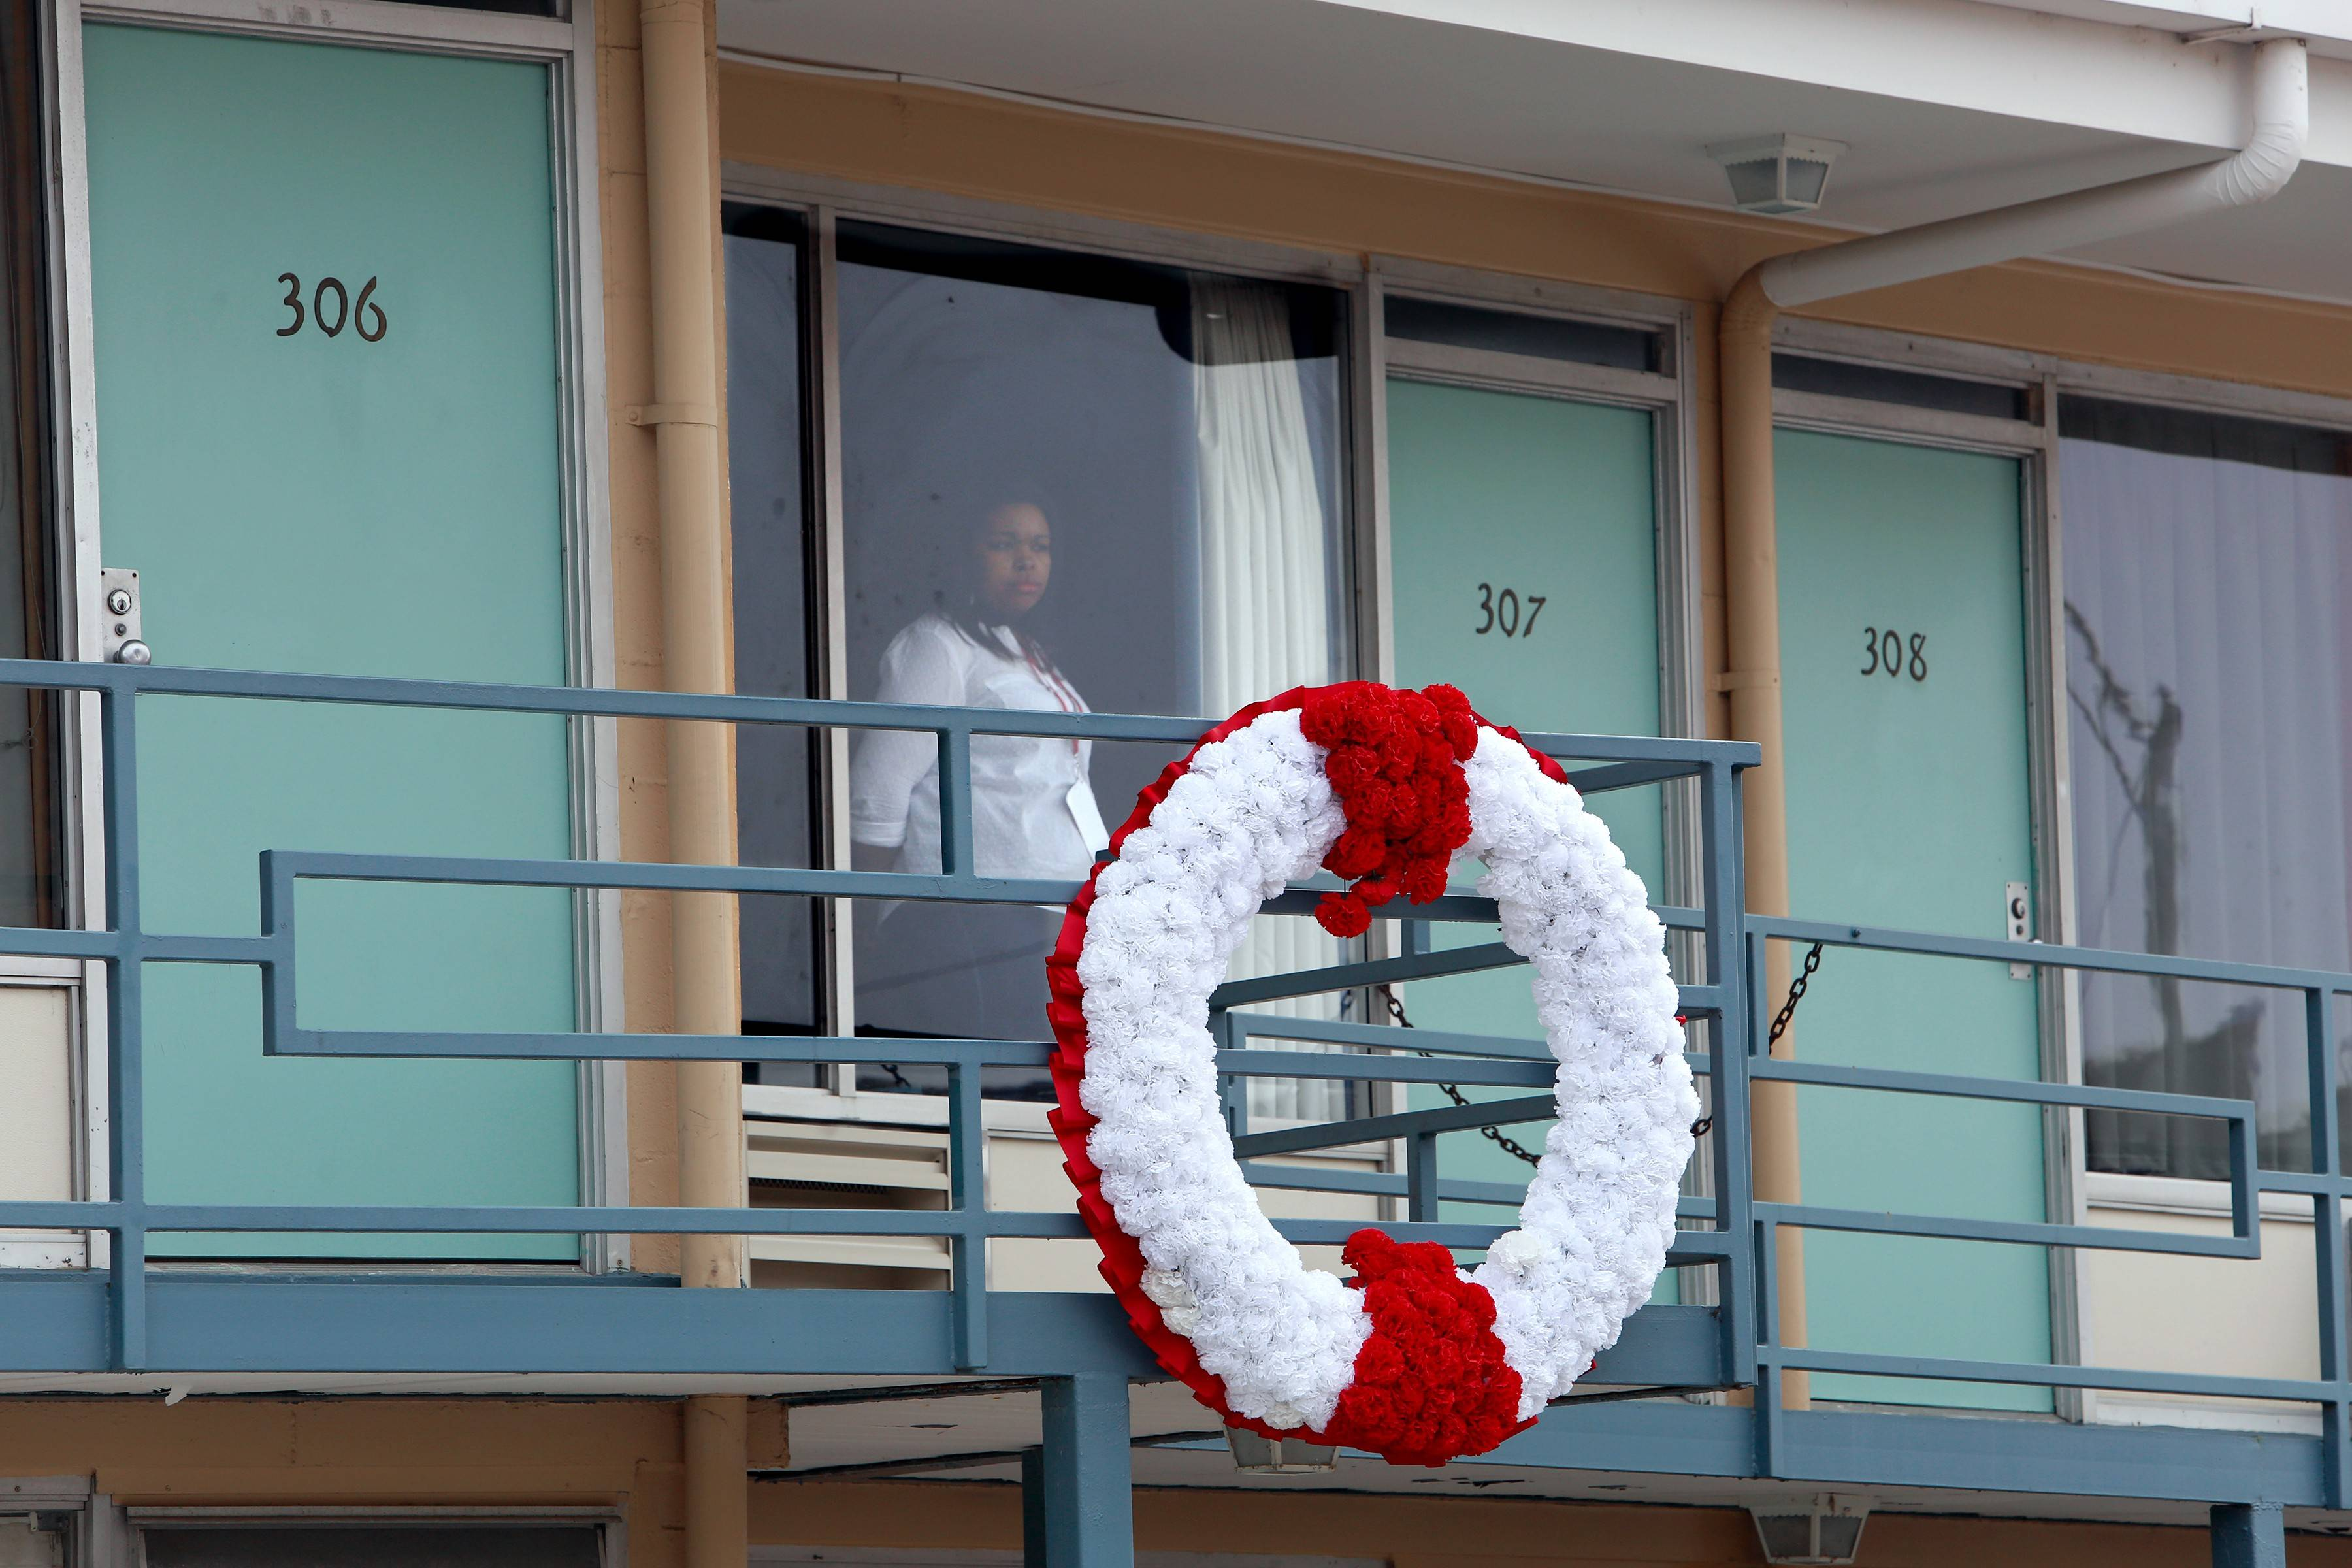 A woman watches the crowd during the grand reopening of the National Civil Rights Museum in Memphis, Tenn., Saturday, April 5. The balcony, outside Room 306 at the Lorraine Motel, is the site where Dr. Martin Luther King Jr. was assassinated on April 4, 1968.